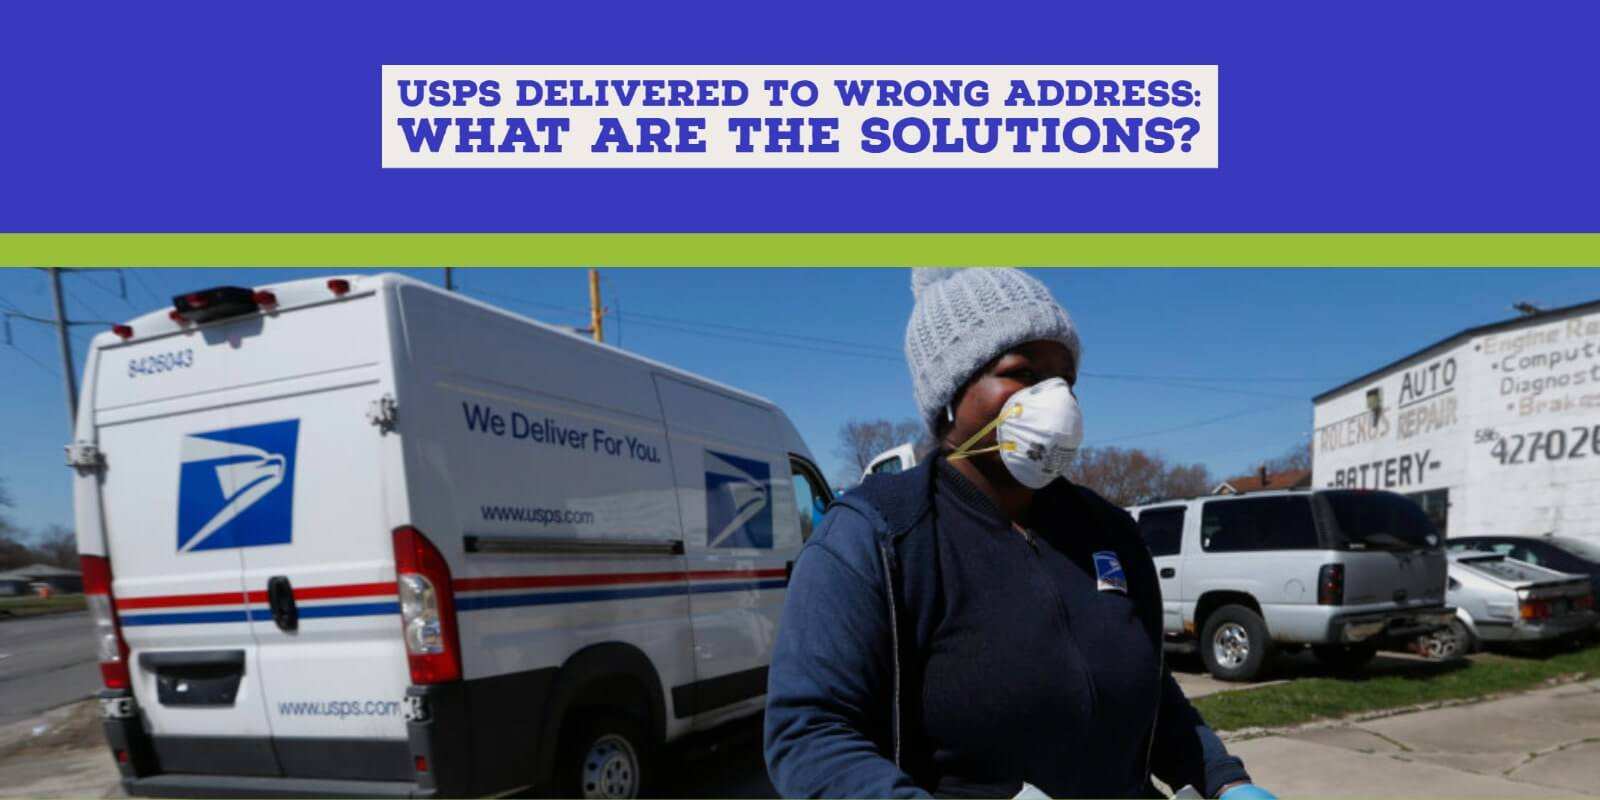 USPS Delivered to Wrong Address Solutions Explained